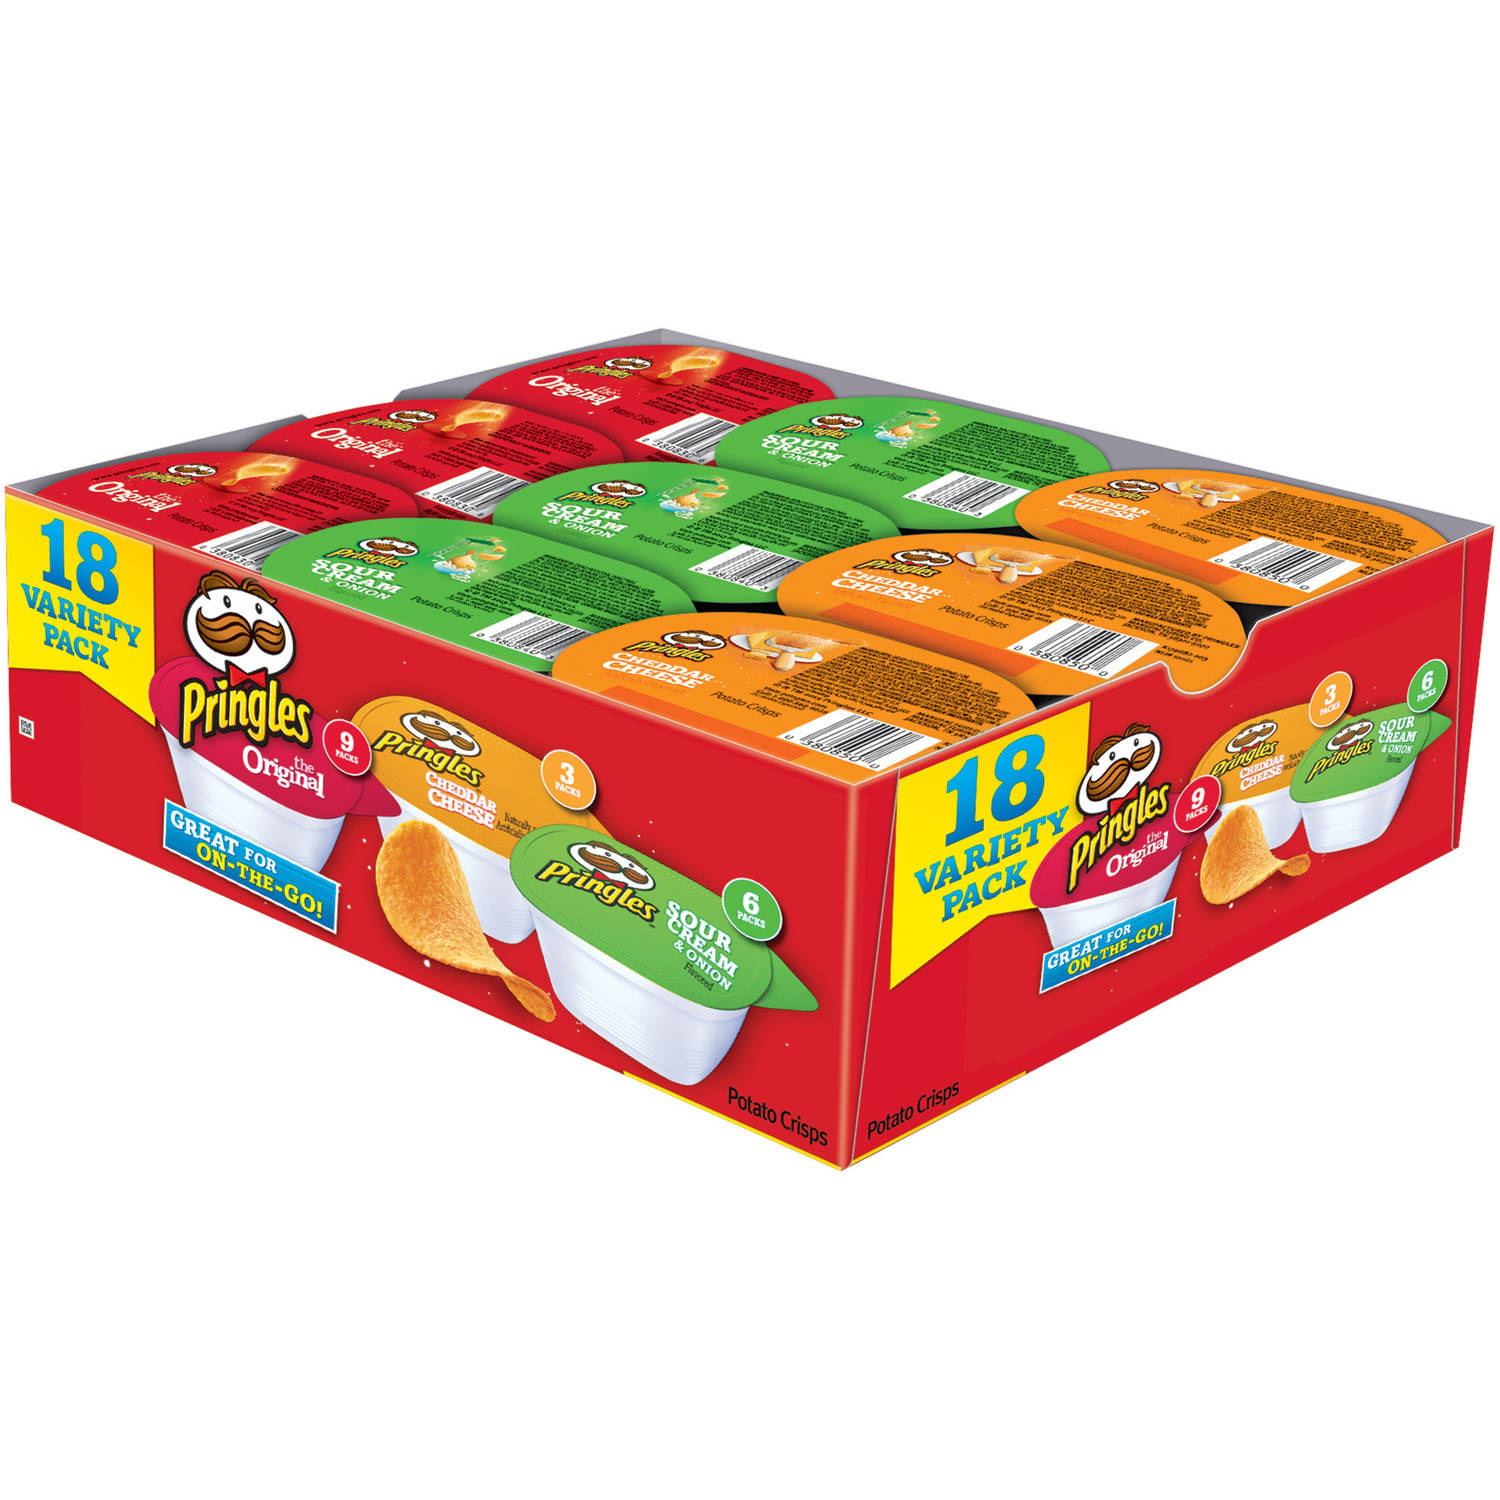 Pringles Snack Stacks! Variety Pack, 18 count, 12.69 oz